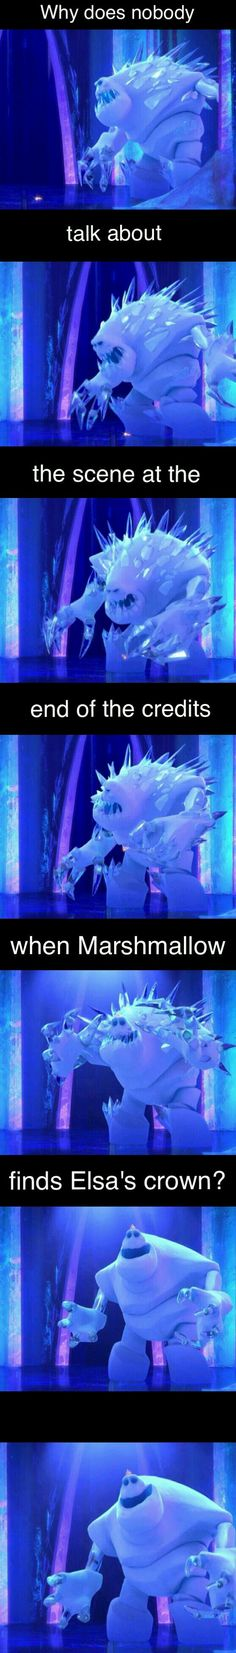 Best Funny Quotes Top 30 Best Frozen Quotes and Pics is part of Disney funny - Funny Quotes QUOTATION Image Quotes Of the day Description Top 30 Best Frozen Quotes and Pics Sharing is Caring Don't forget to share this quote Disney Pixar, Disney Amor, Film Disney, Frozen Disney, Disney Fun, Disney And Dreamworks, Disney Magic, Disney Stuff, Disney Movie Scenes